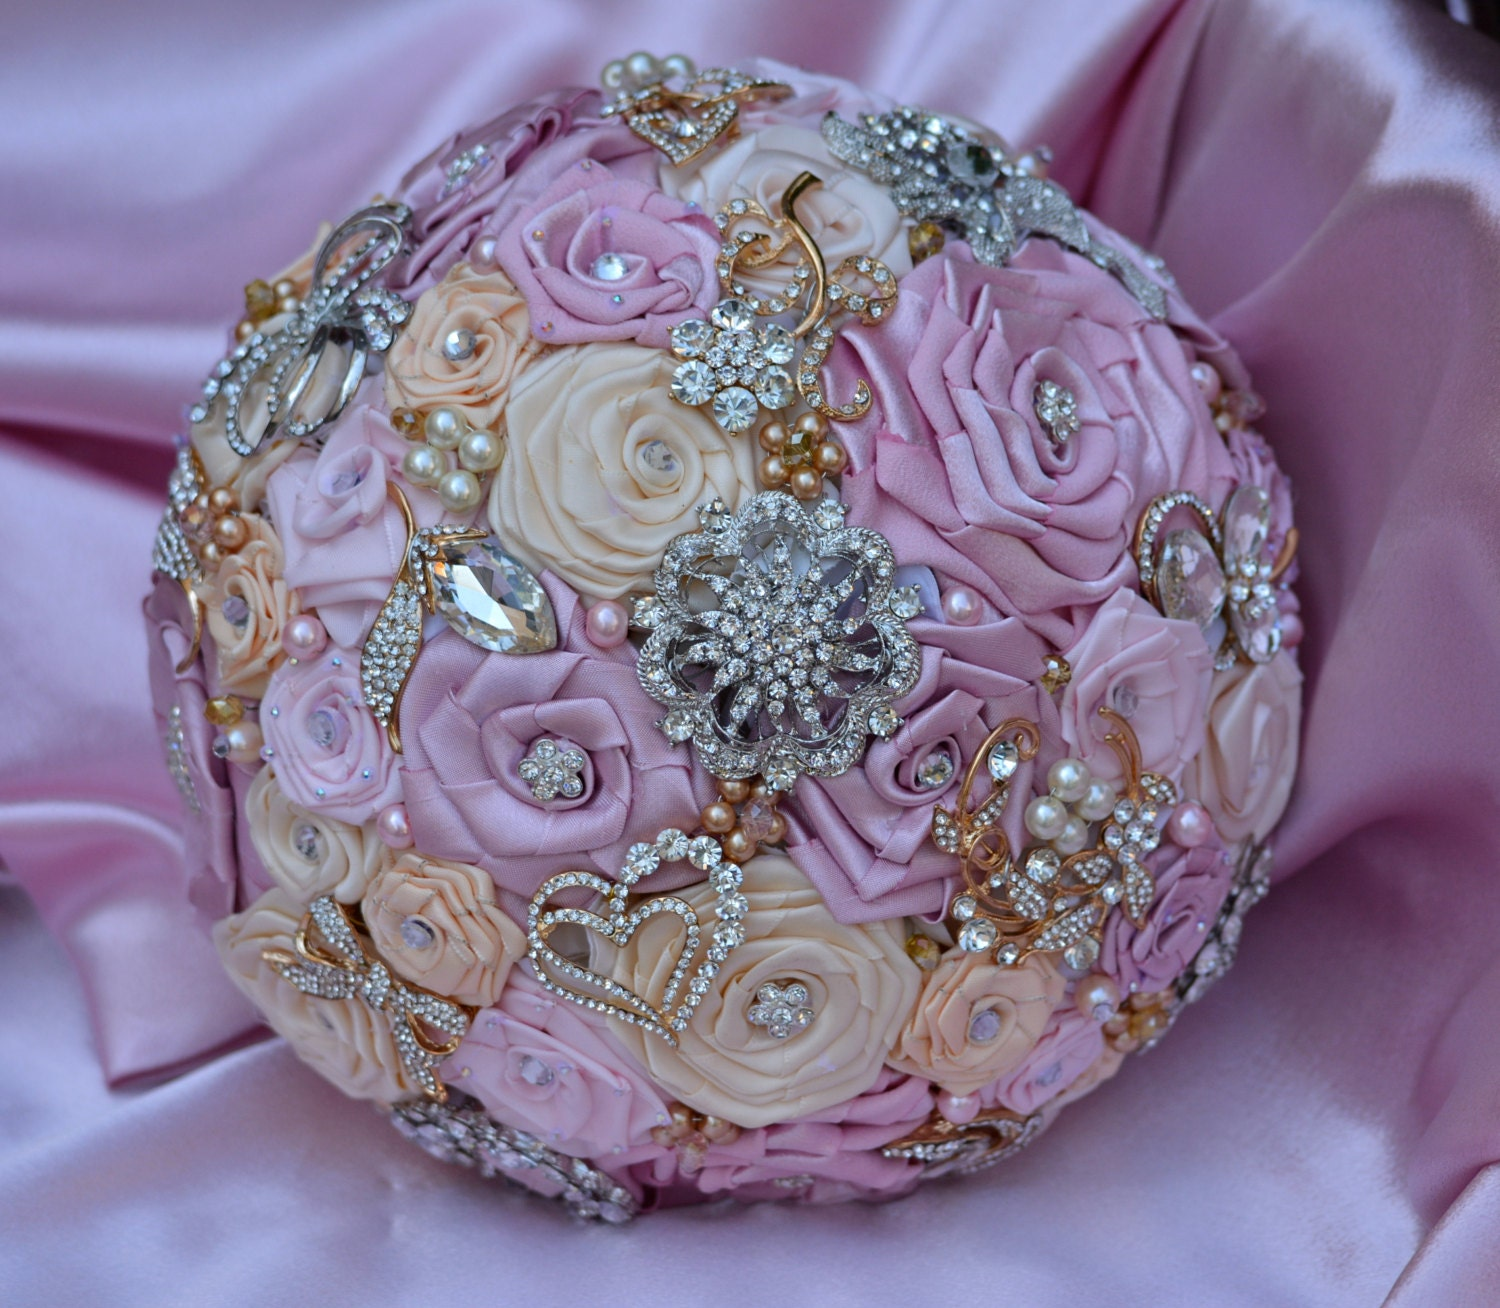 Angel Bouquet.-Full Price/Made to Order in your colors. Handmade roses and brooch Bouquet.